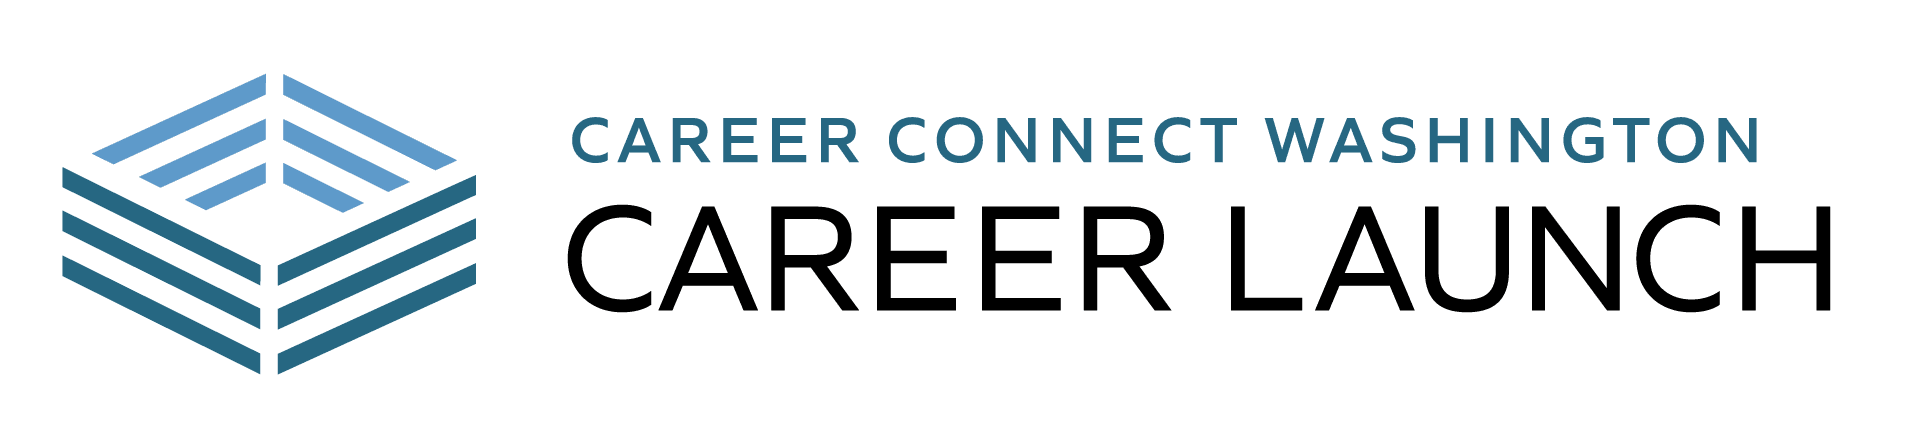 Career Connect Washington - Career Launch